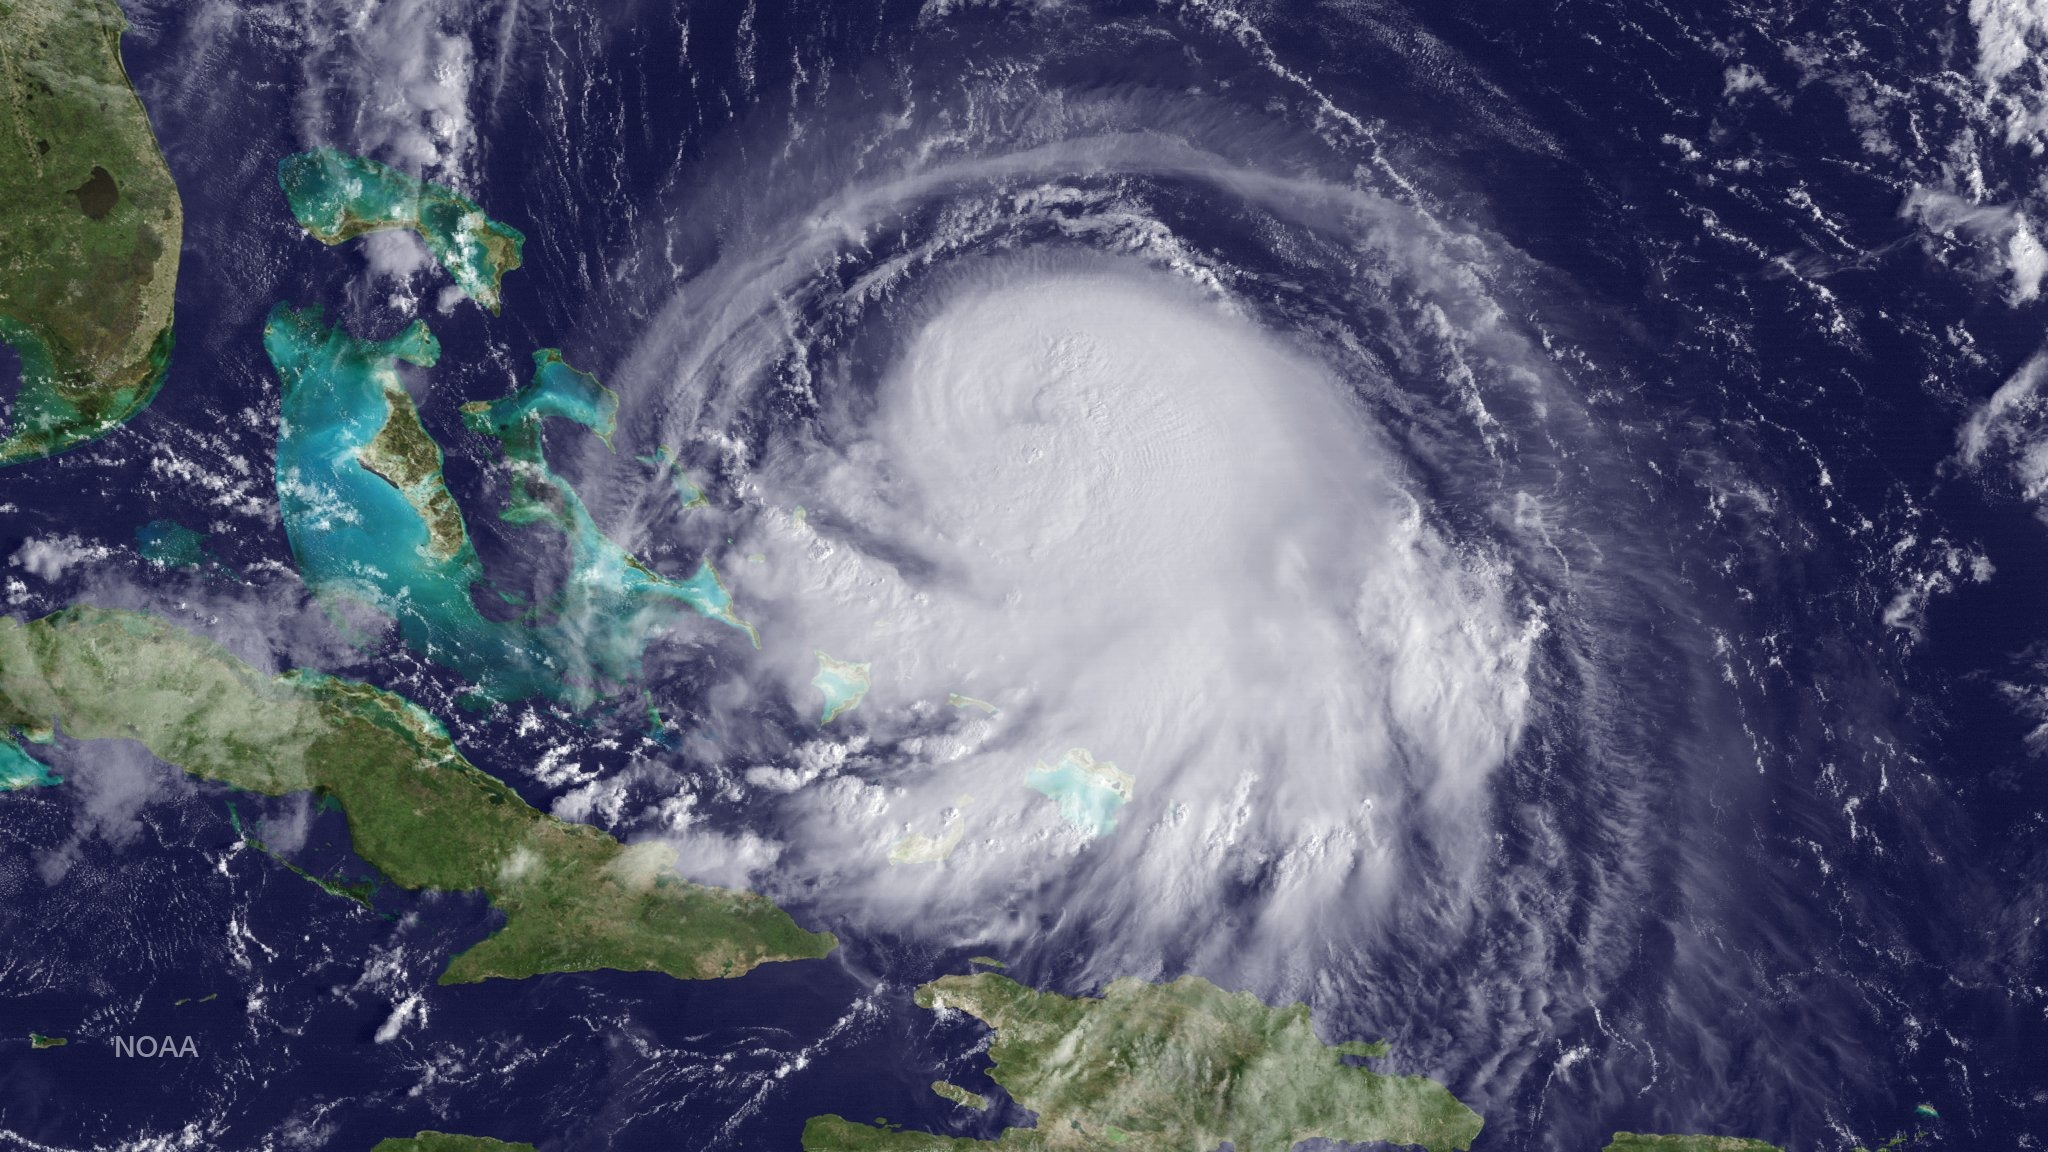 Hurricane Joaquin is seen churning in the Caribbean on Sept. 30, 2015.